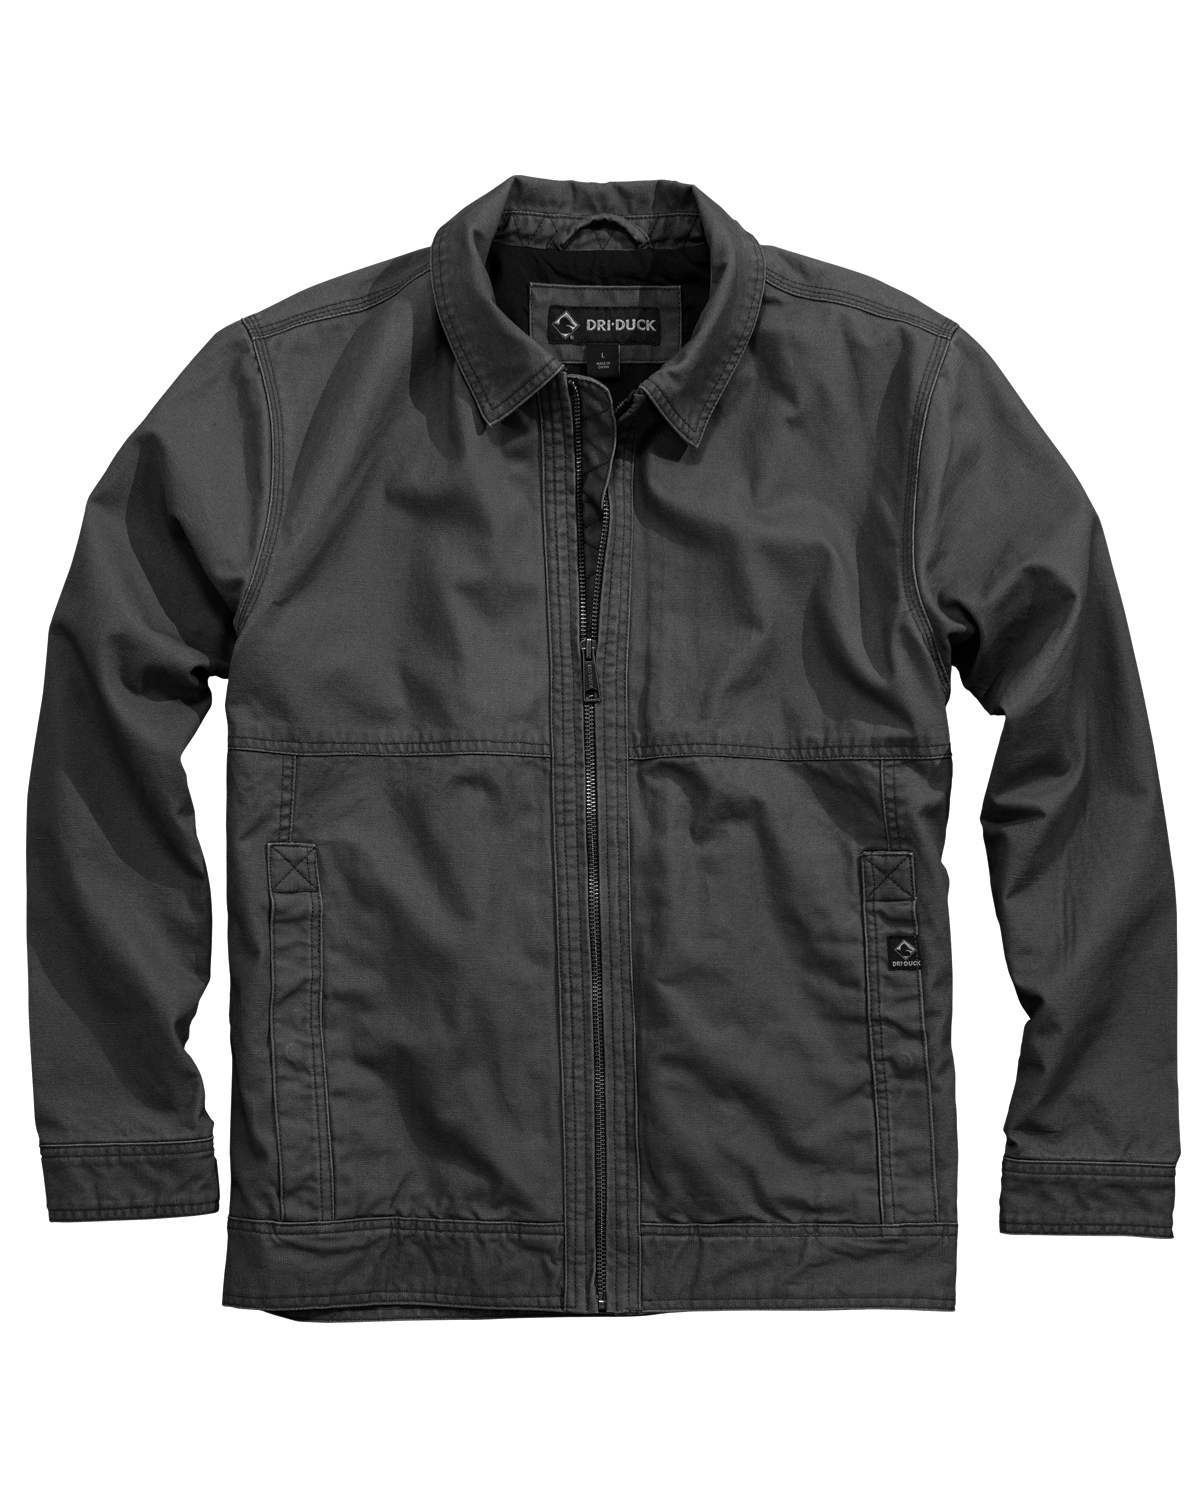 DRI DUCK 5036 - Men's Overland Jacket